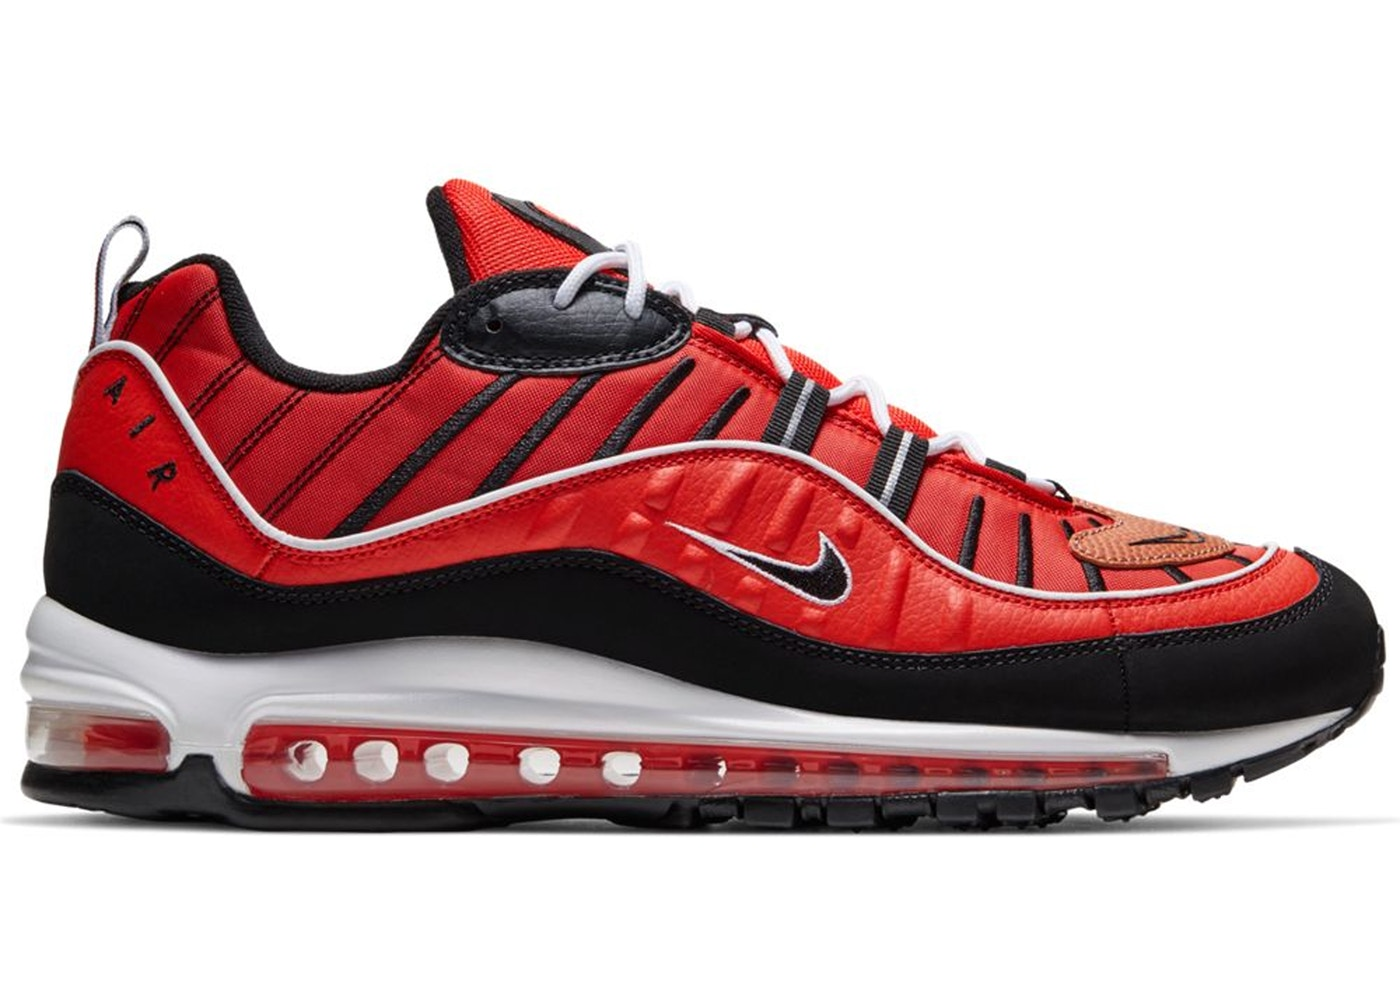 80912dfe0c Air Max 98 Habanero Red Black - 640744-604